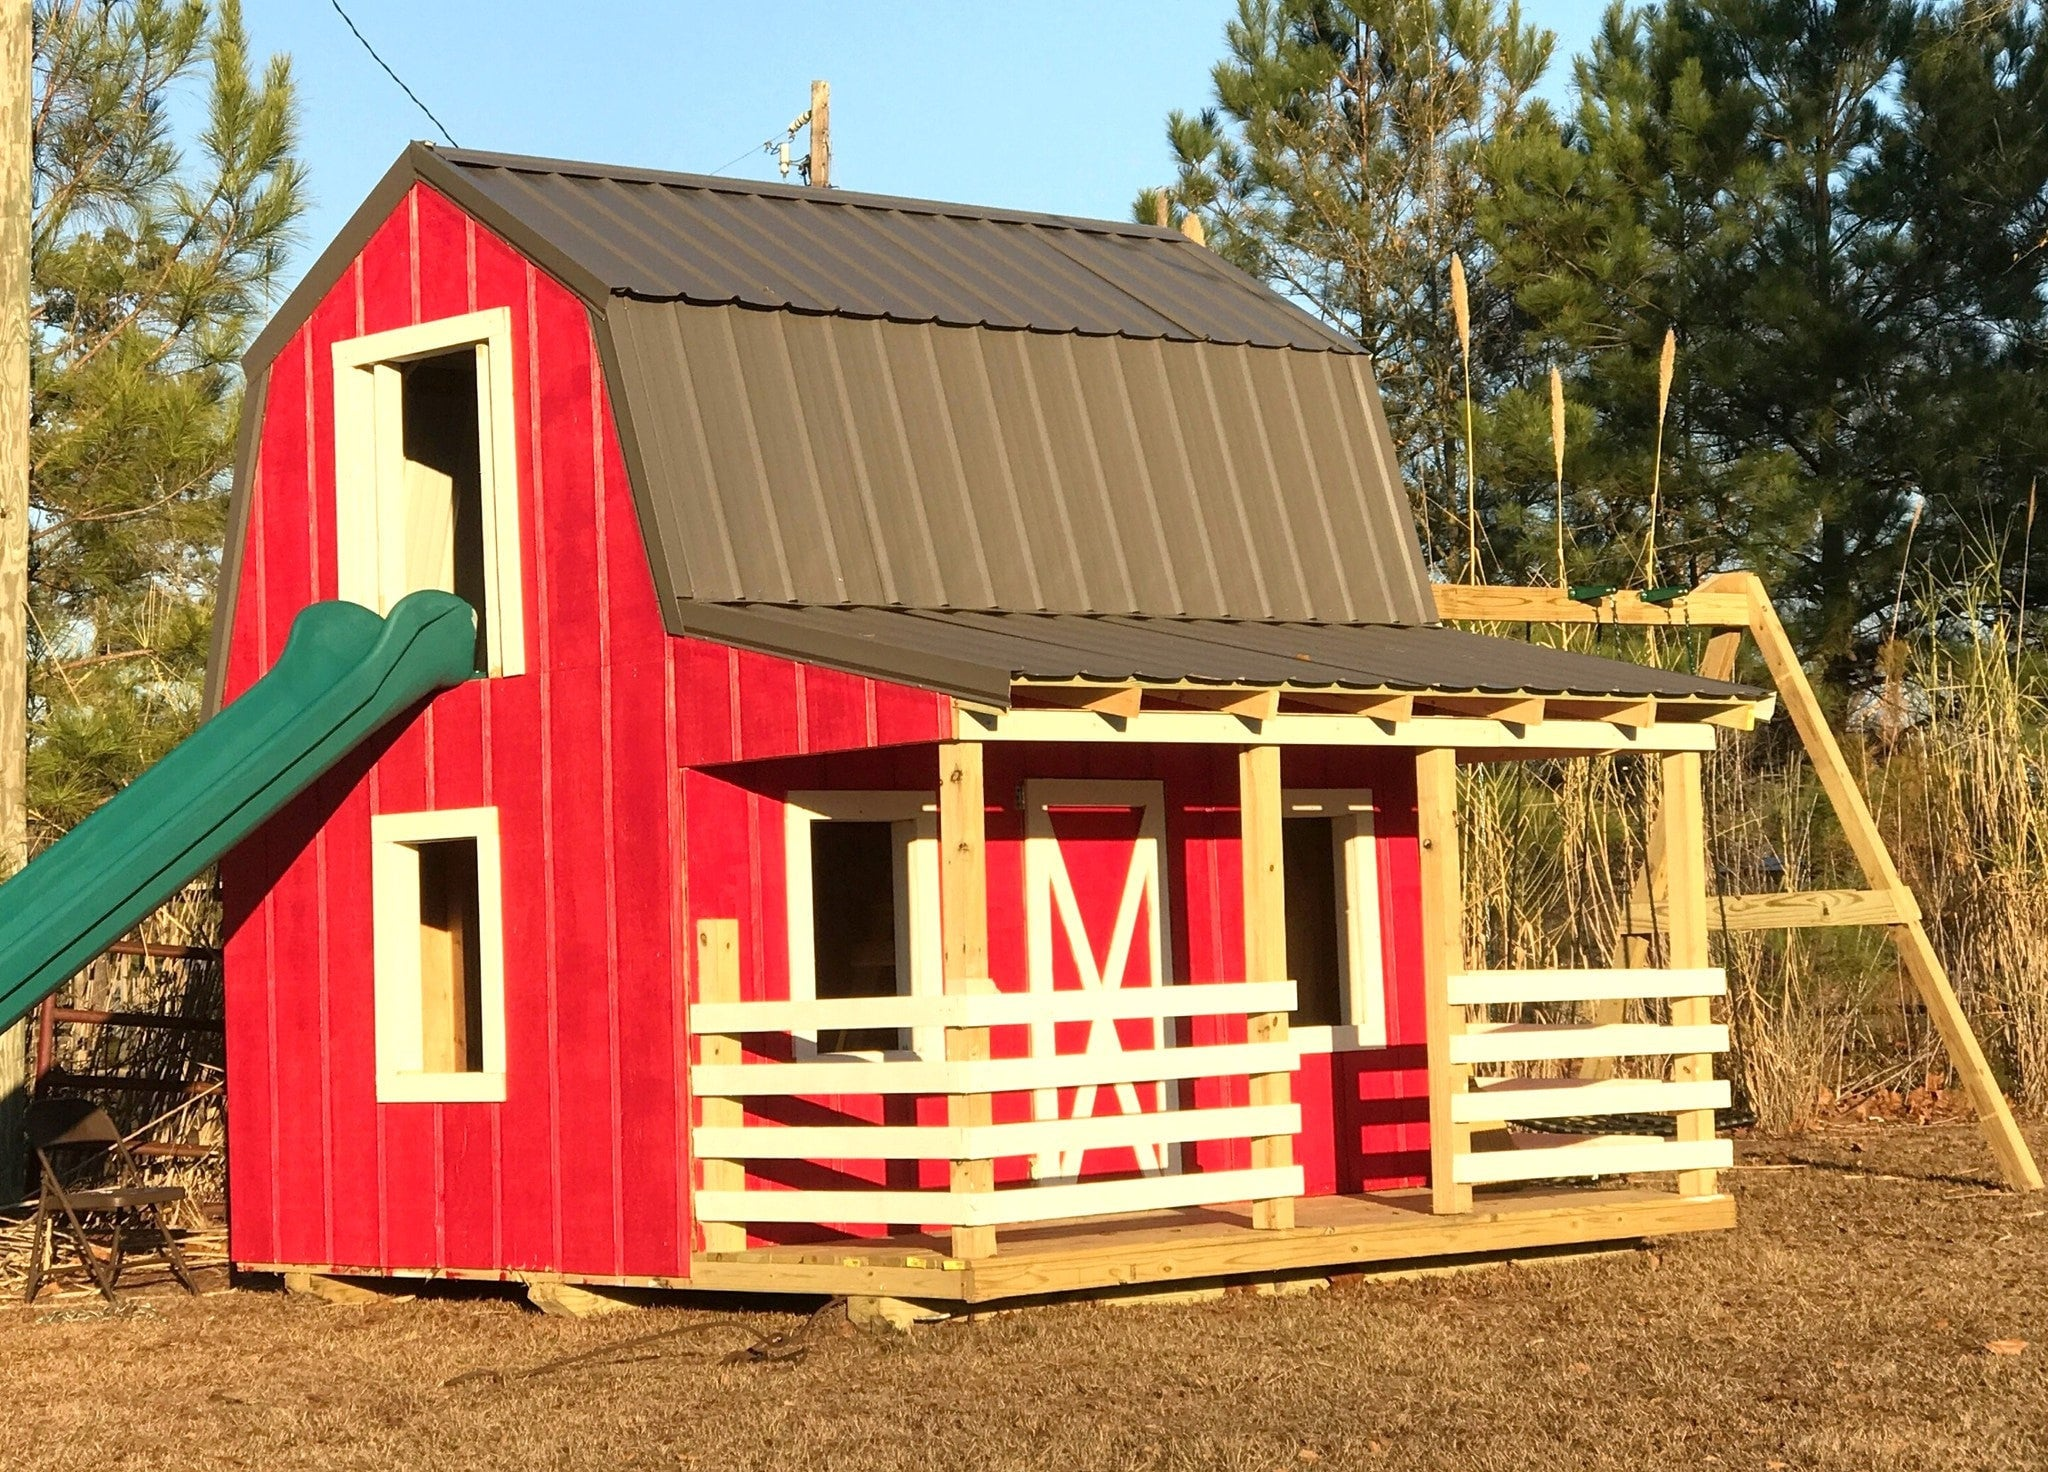 Large Barn & Silo Playhouse Plan for Kids | 12x19, Two Stories ... on doghouse with porch plans, workshop with porch plans, cabin with porch plans, garage with porch plans, cottage with porch plans,